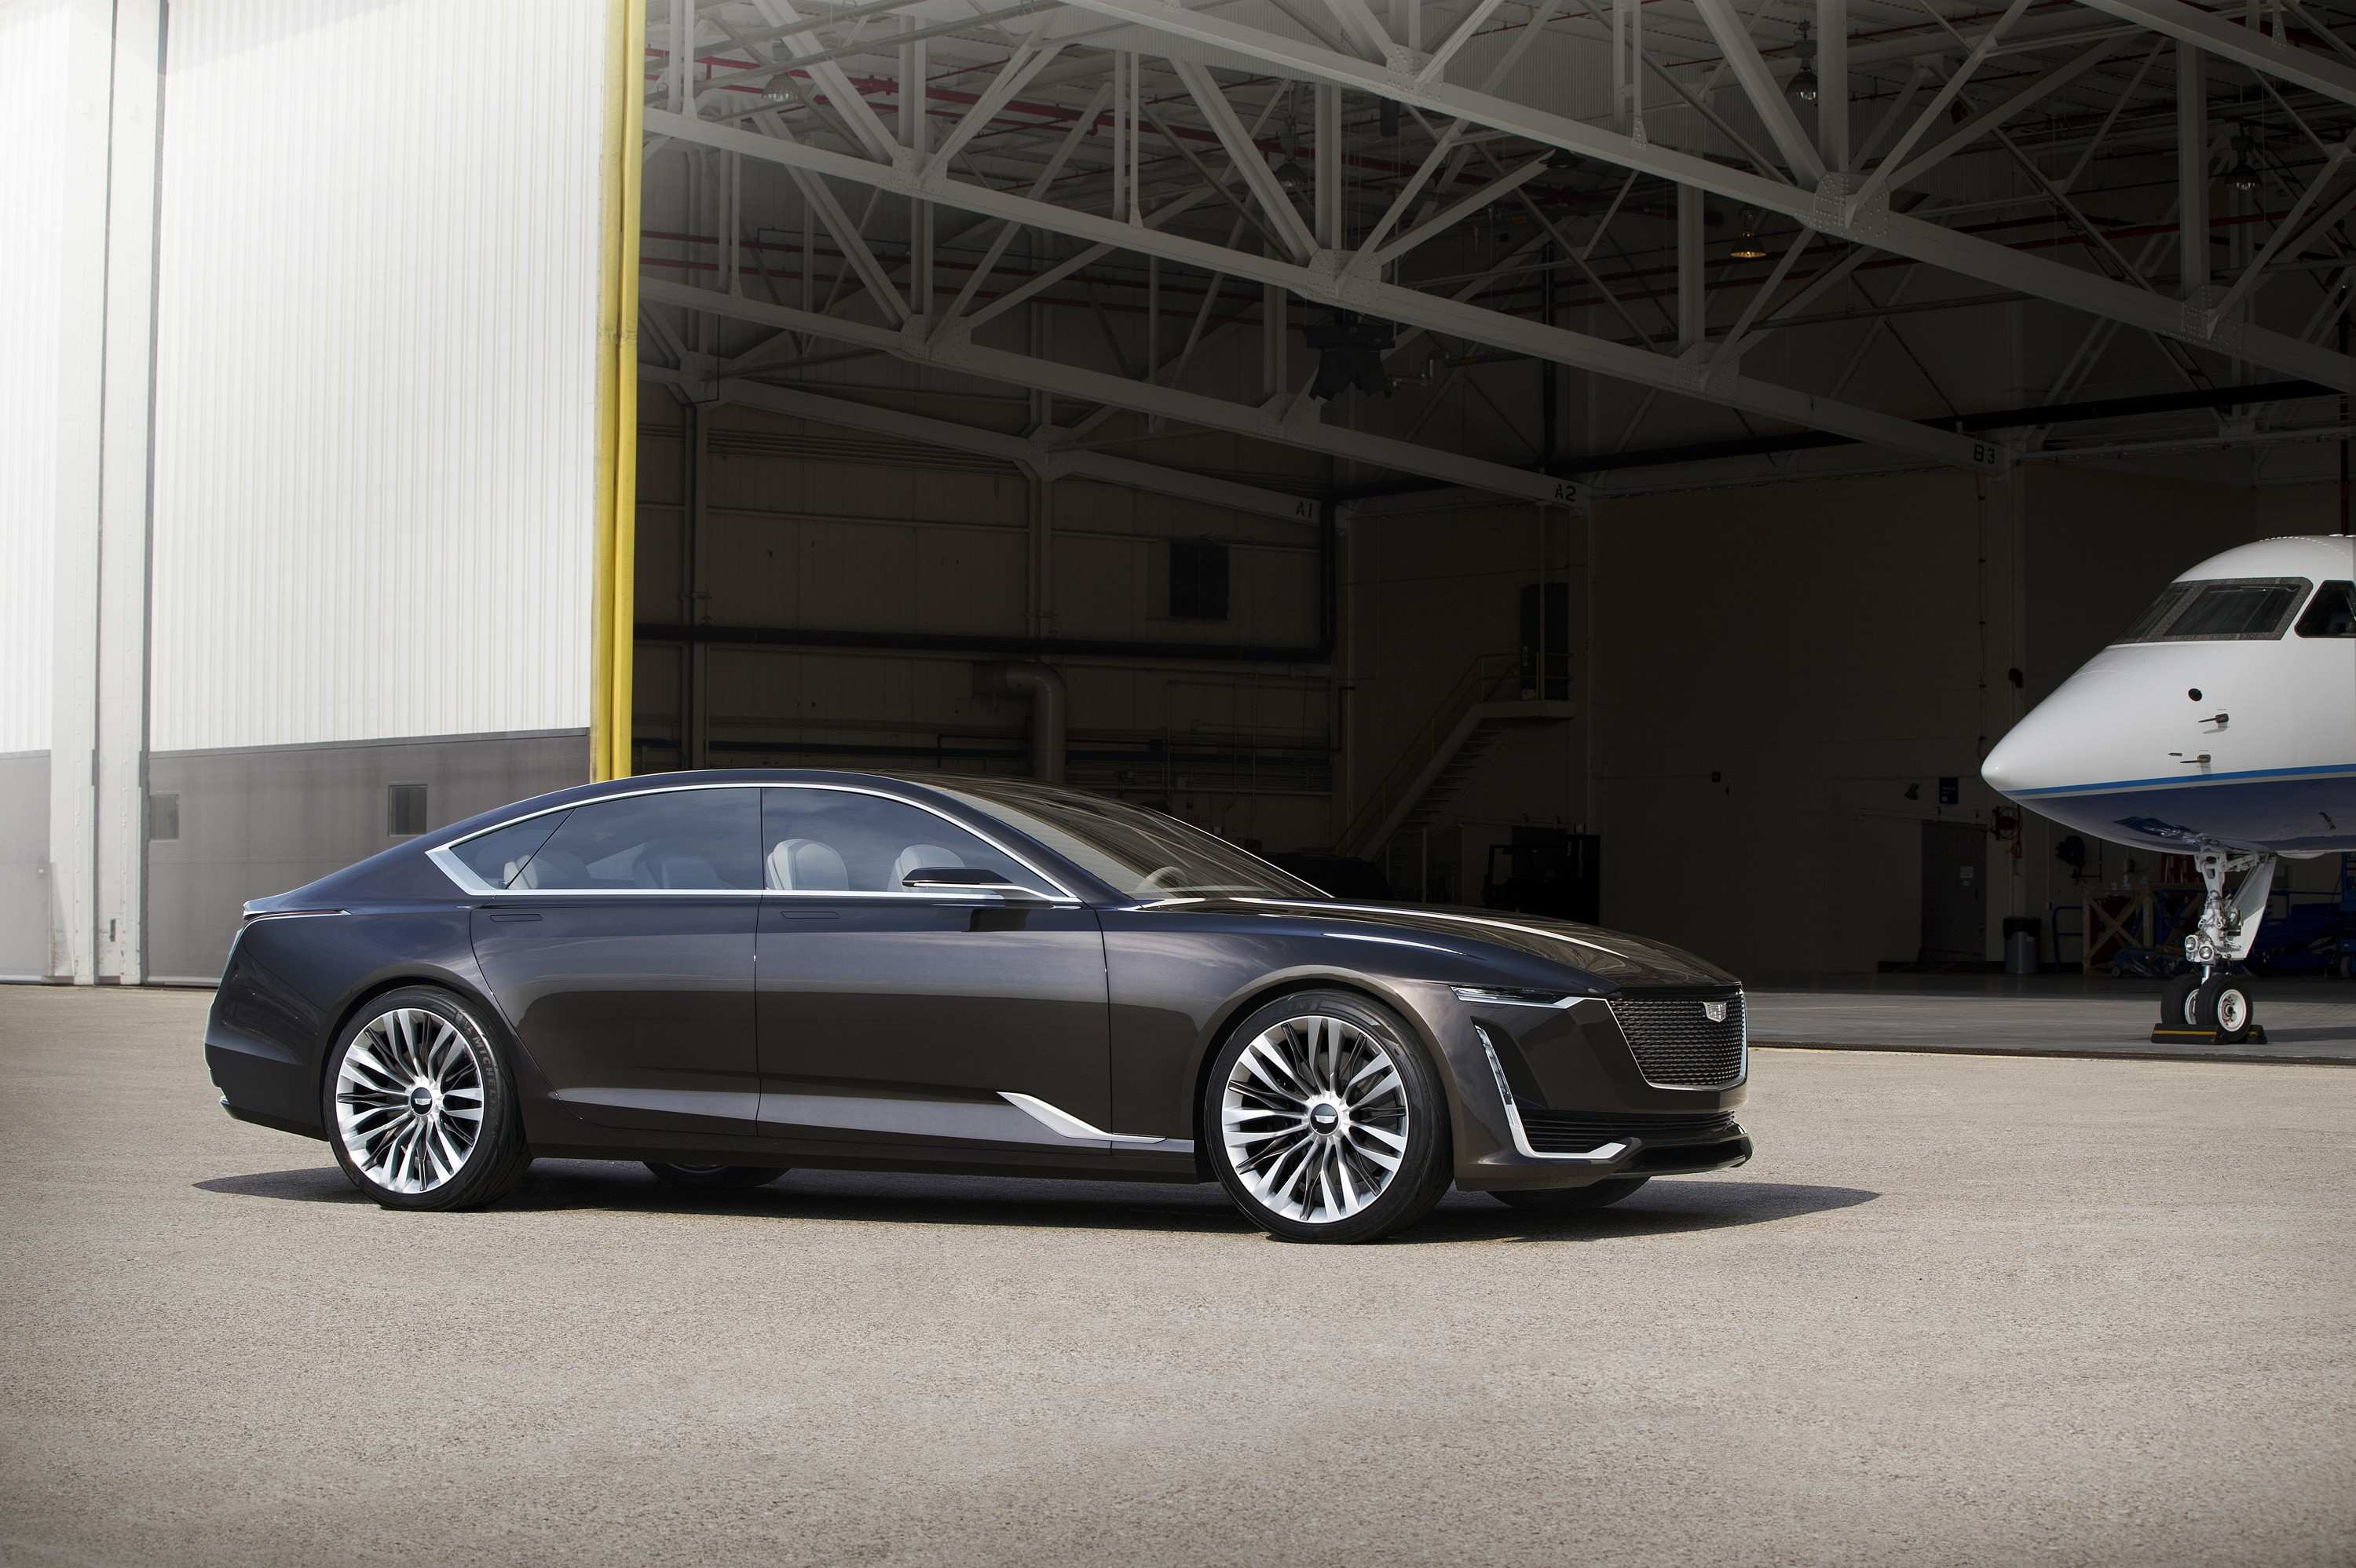 74 A New Cadillac Sedans For 2020 Price And Release Date